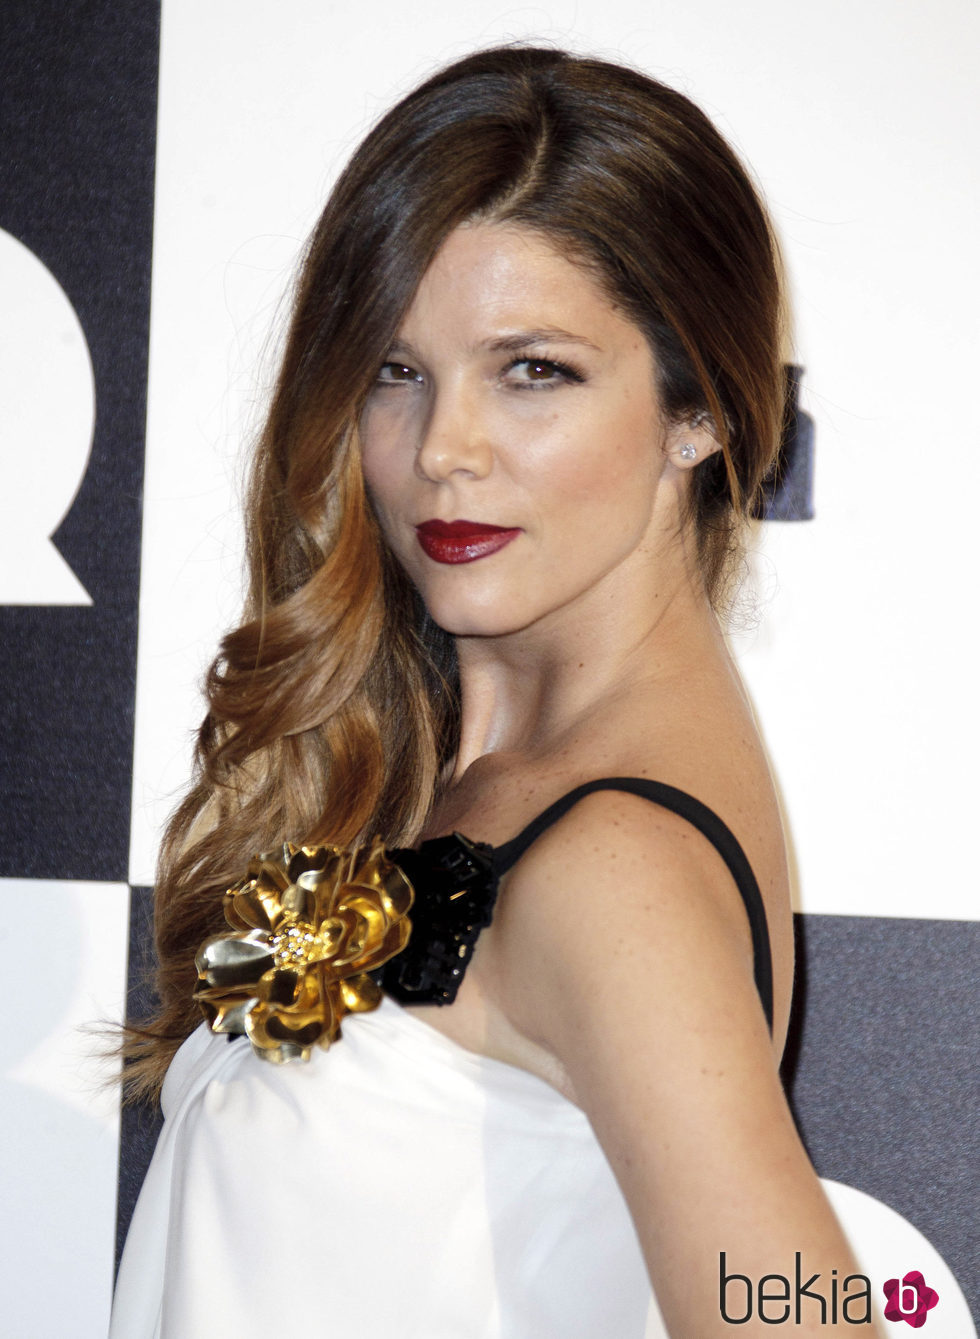 Juana Acosta con peinado 'Old Hollywood'